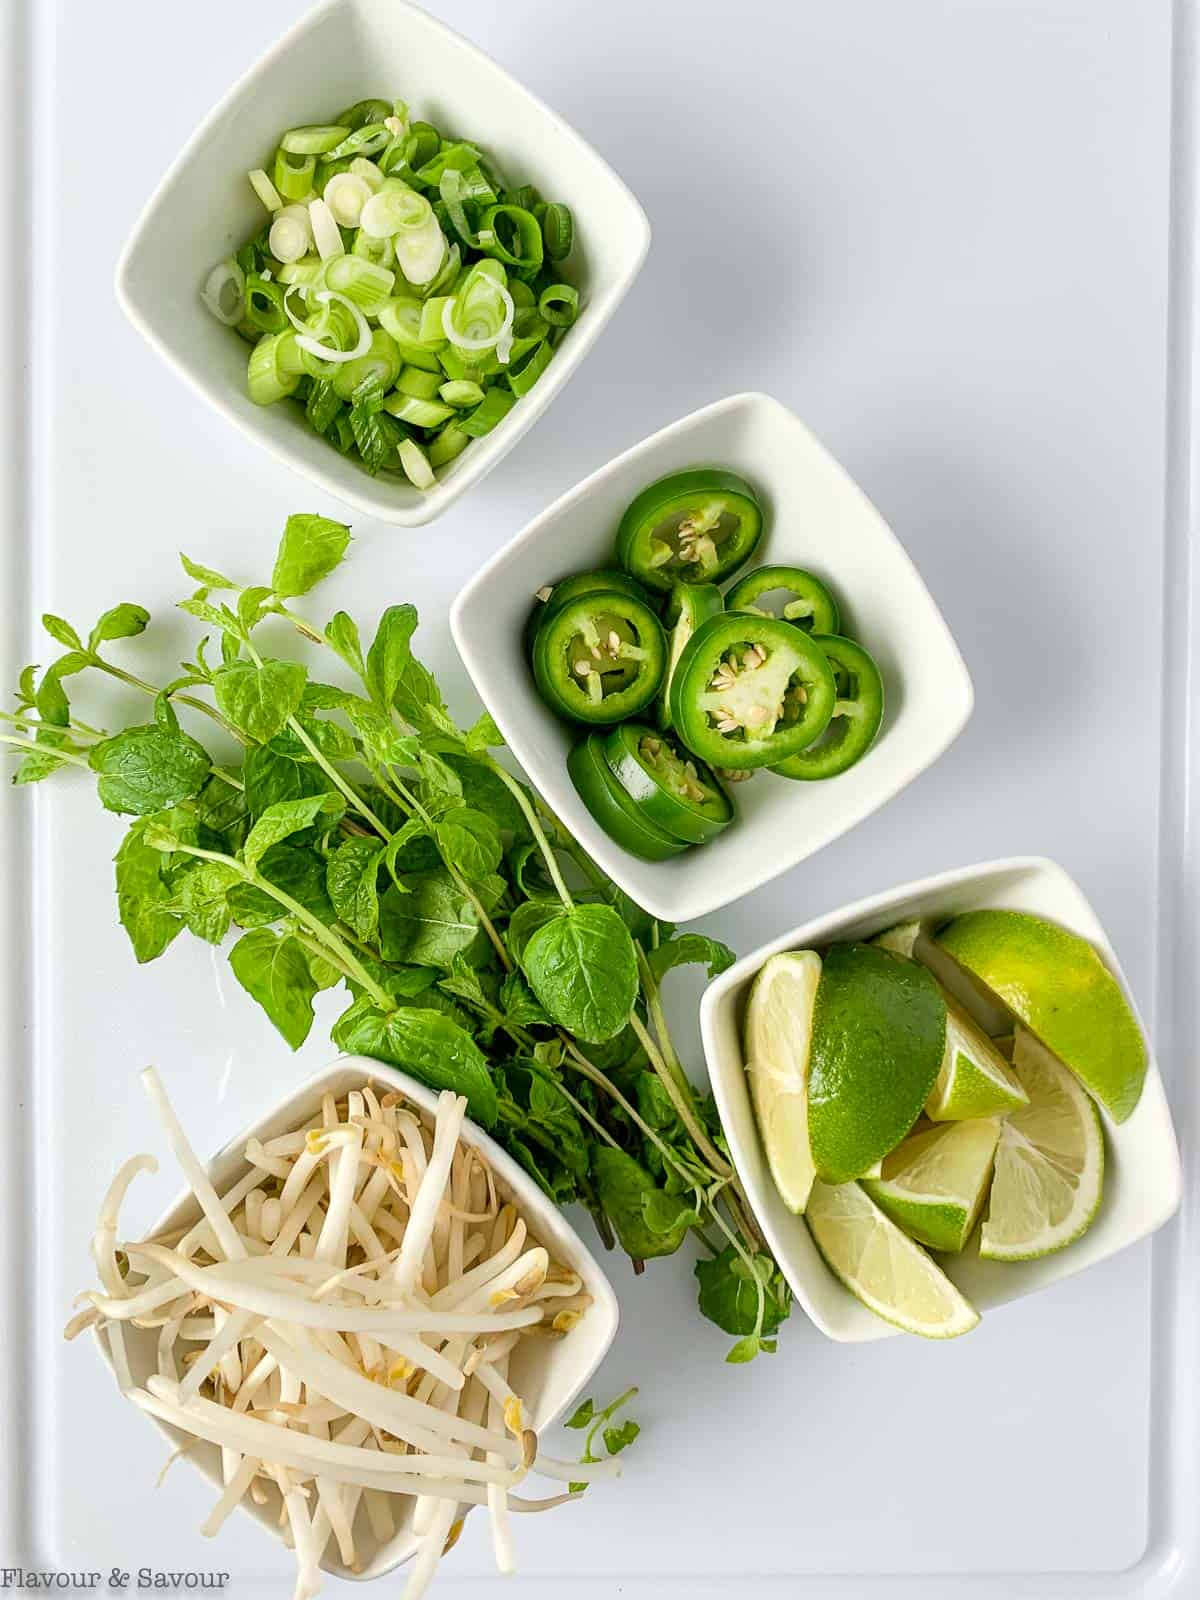 Garnishes for Instant Pot Chicken Pho or Vietnamese Chicken Noodle Soup